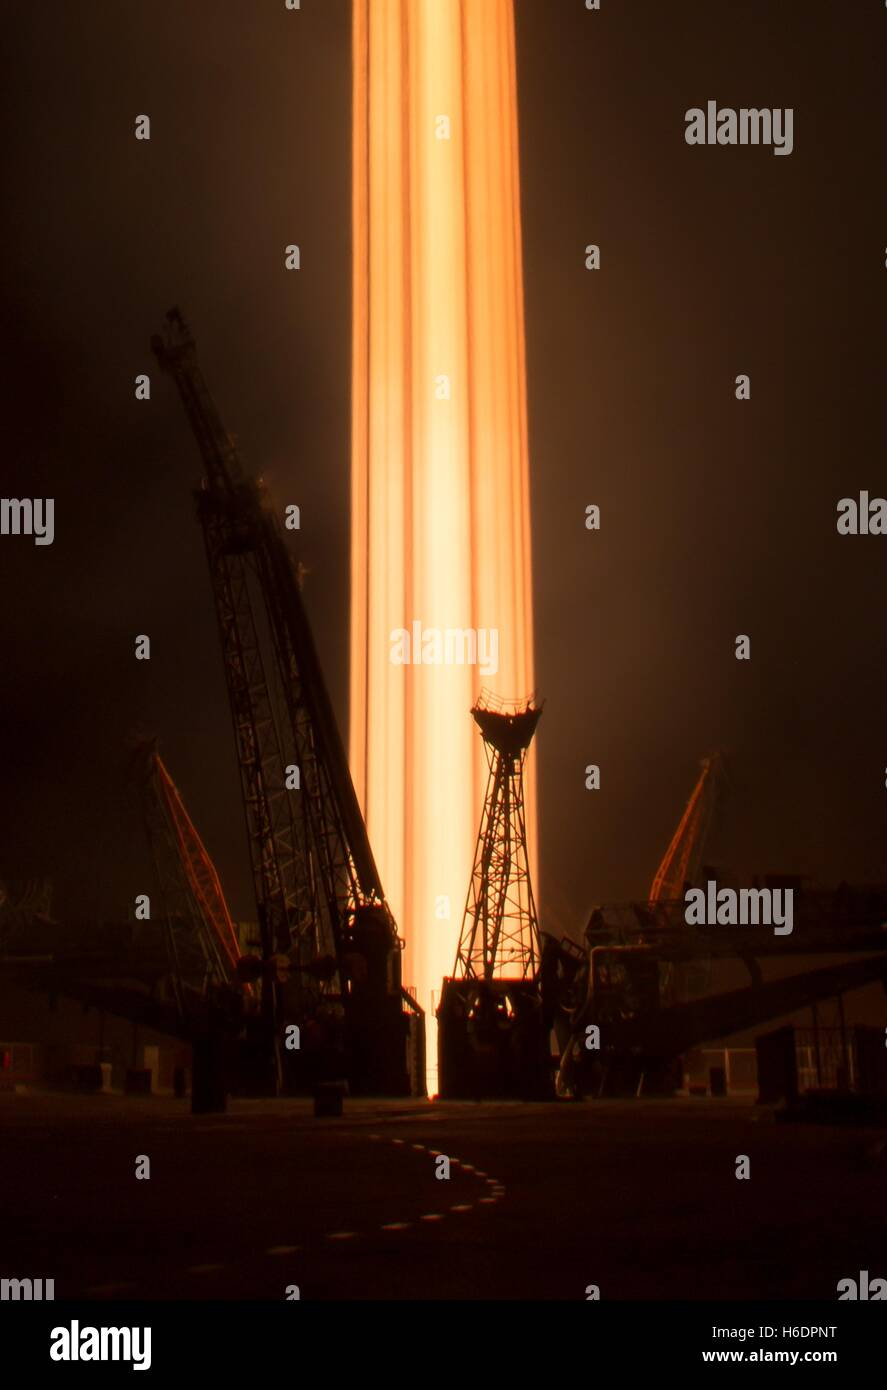 Baikonur, Kazakhstan. 18th Nov, 2016. A long exposure showing the rocket flames of the Soyuz MS-03 spacecraft launching - Stock Image